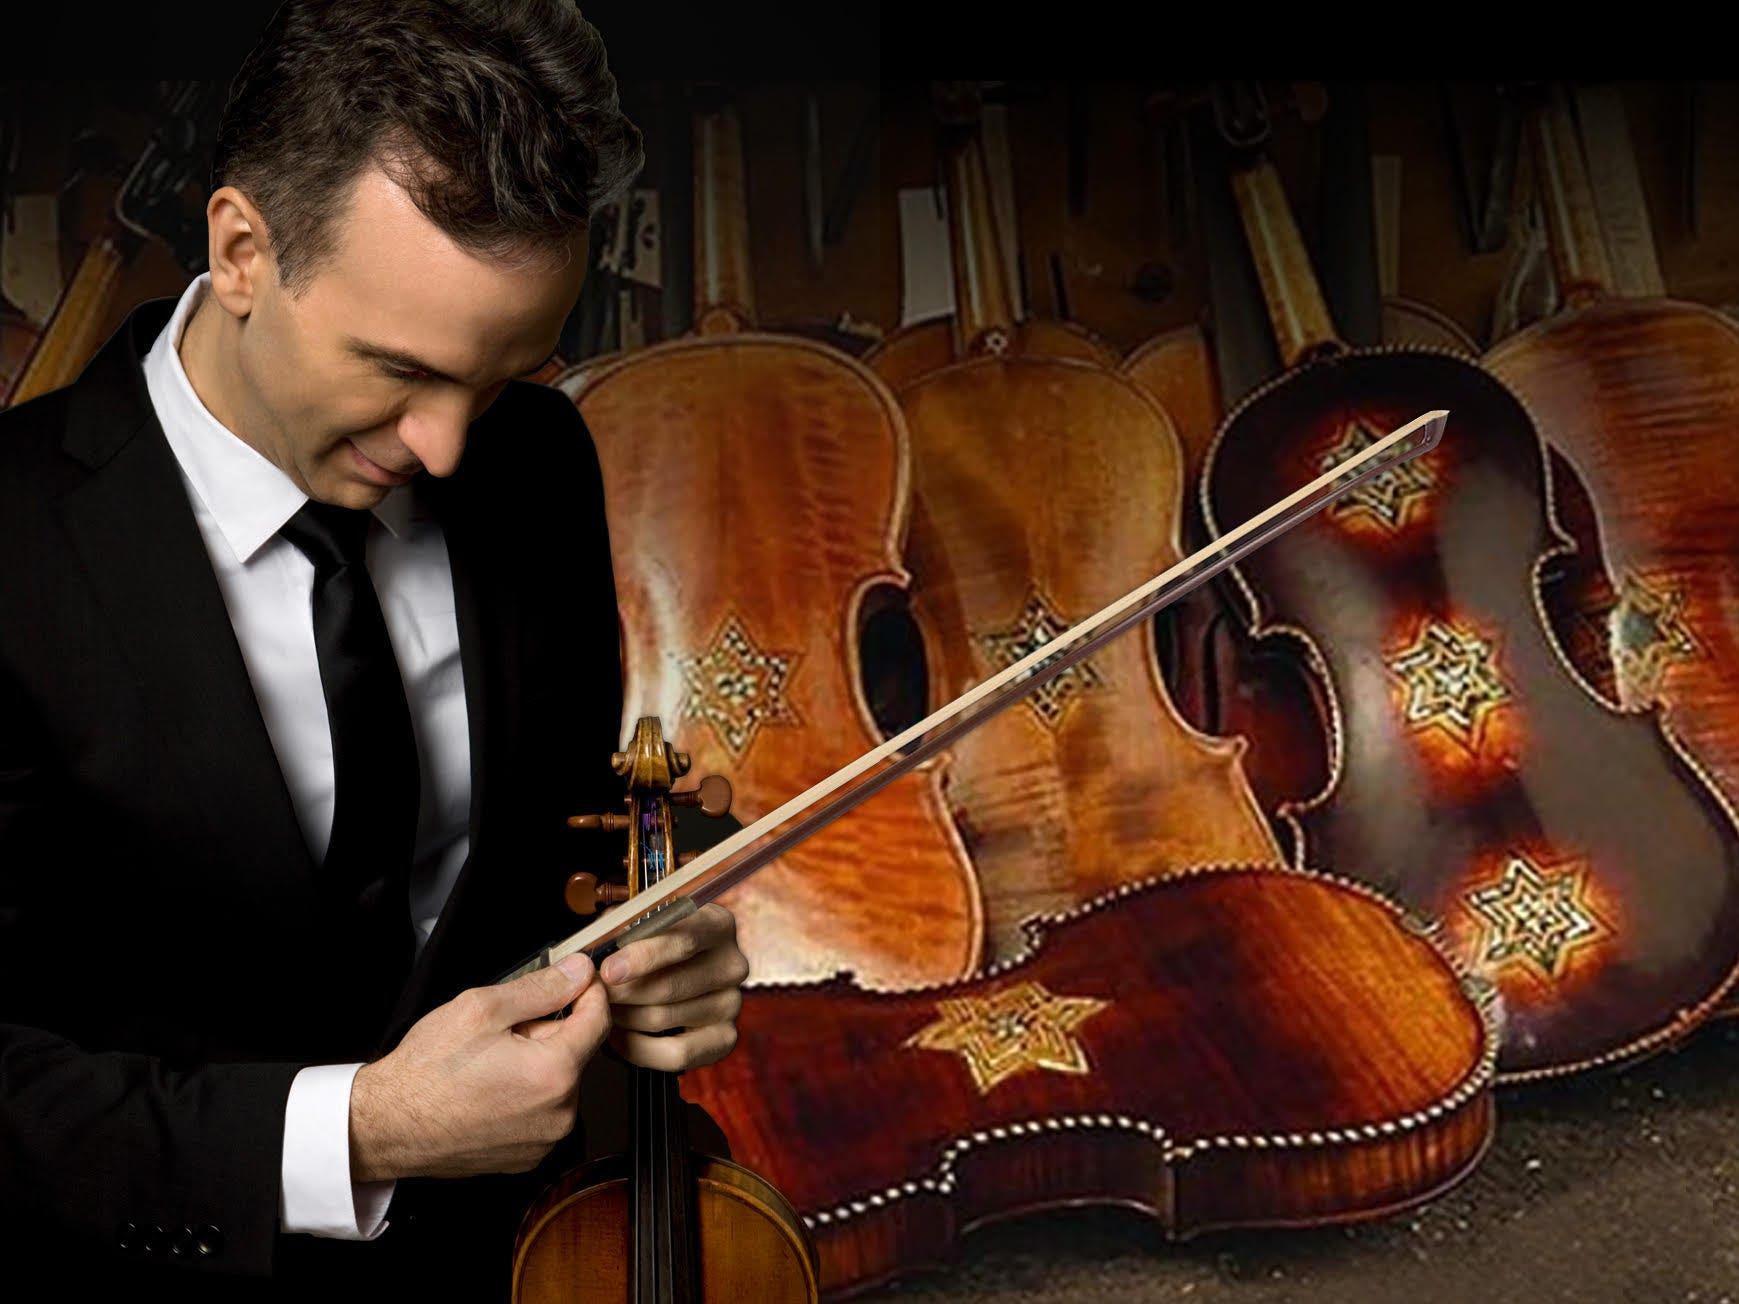 Gil Shaham in 'Violins of Hope' performed with instruments rescued from the Holocaust